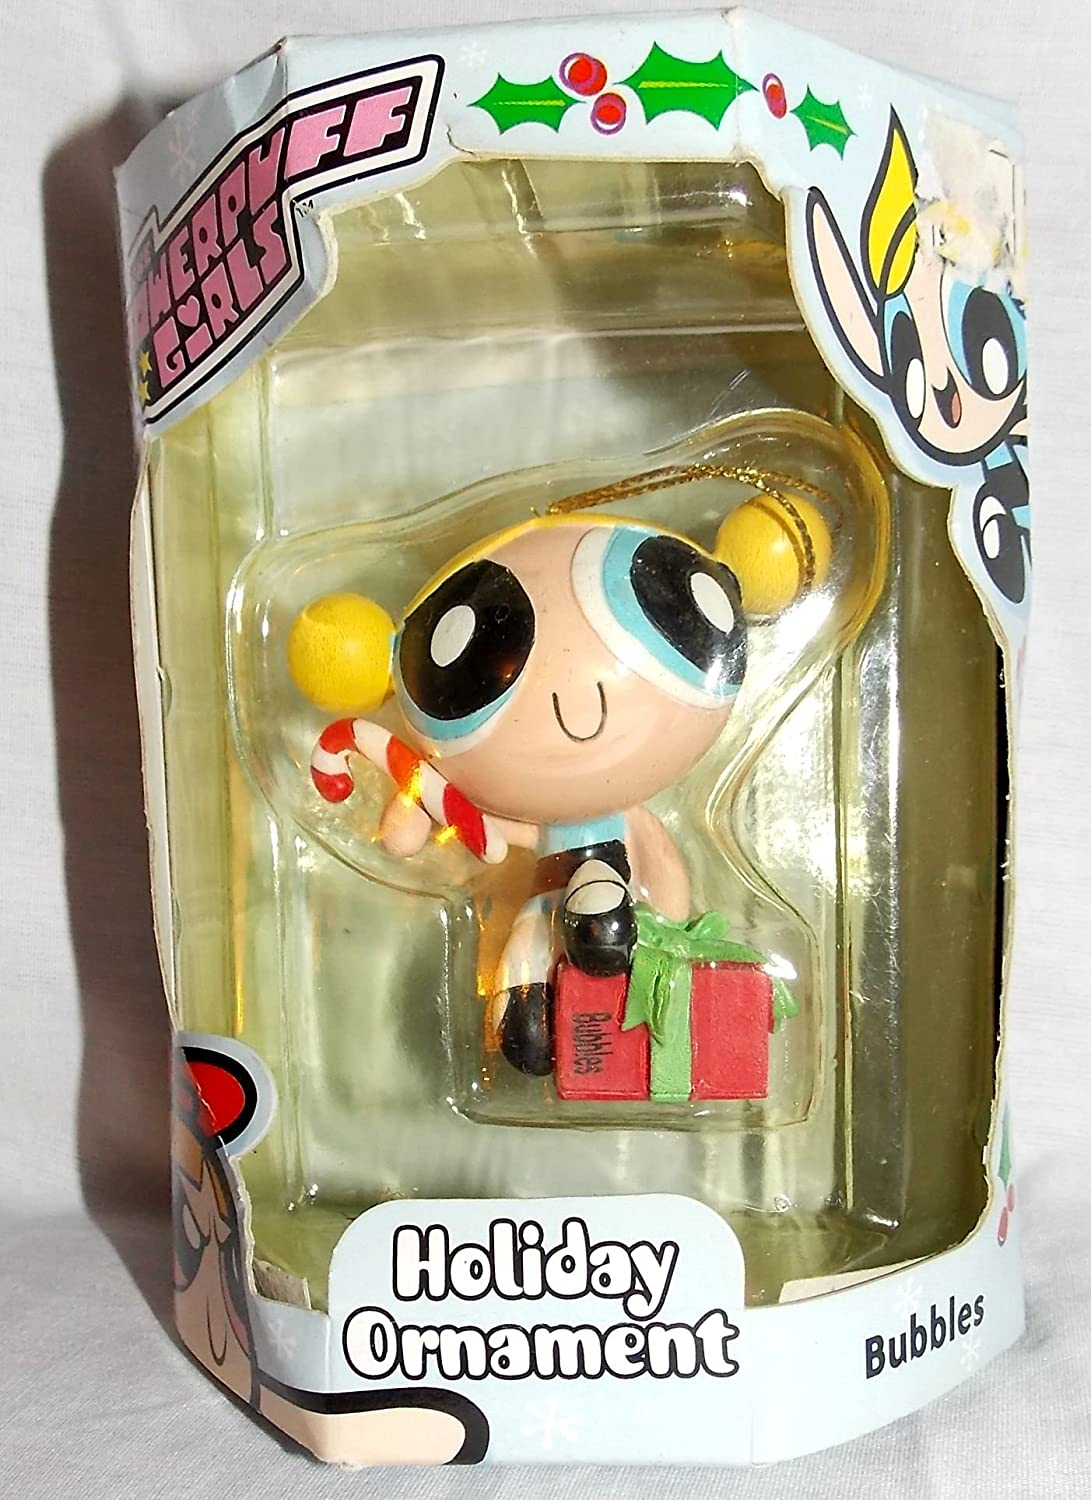 2000 Powerpuff Girls Bubbles on Present Holding Candy Cane 2.5 Christmas Ornament